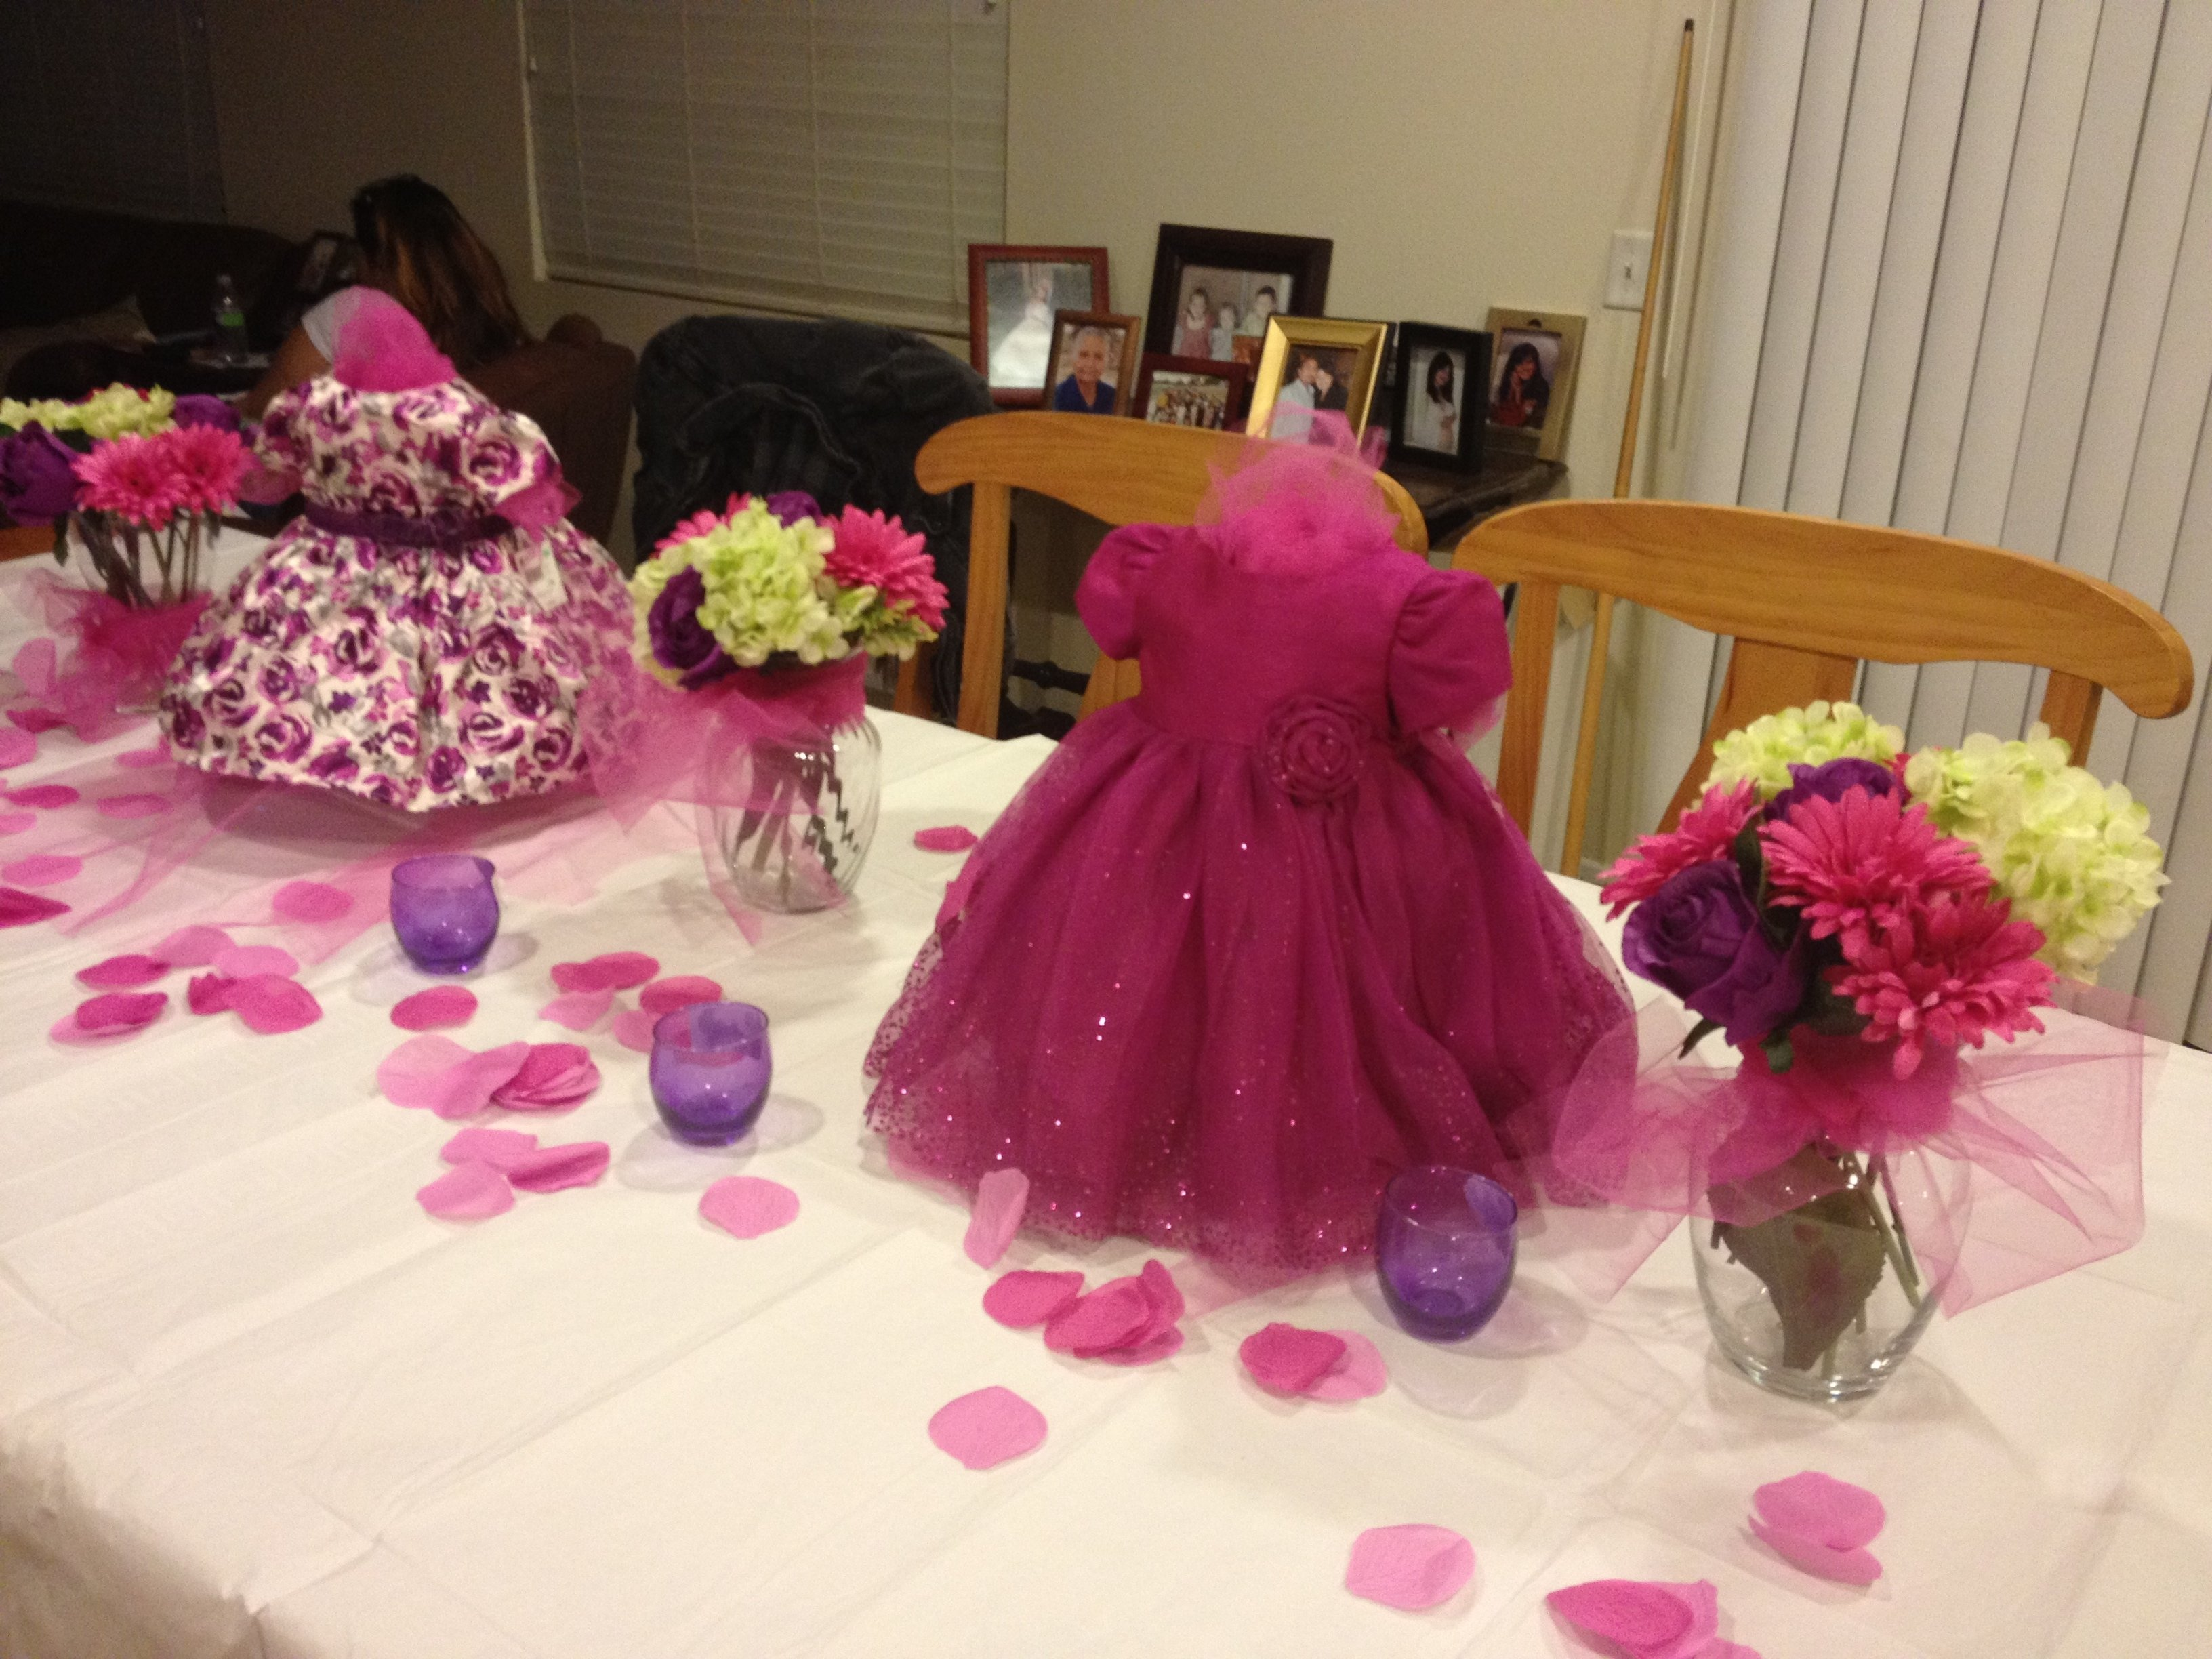 10 Fantastic Baby Girl Shower Decoration Ideas best baby shower decorations images on pinterest y ideas pink to 2021